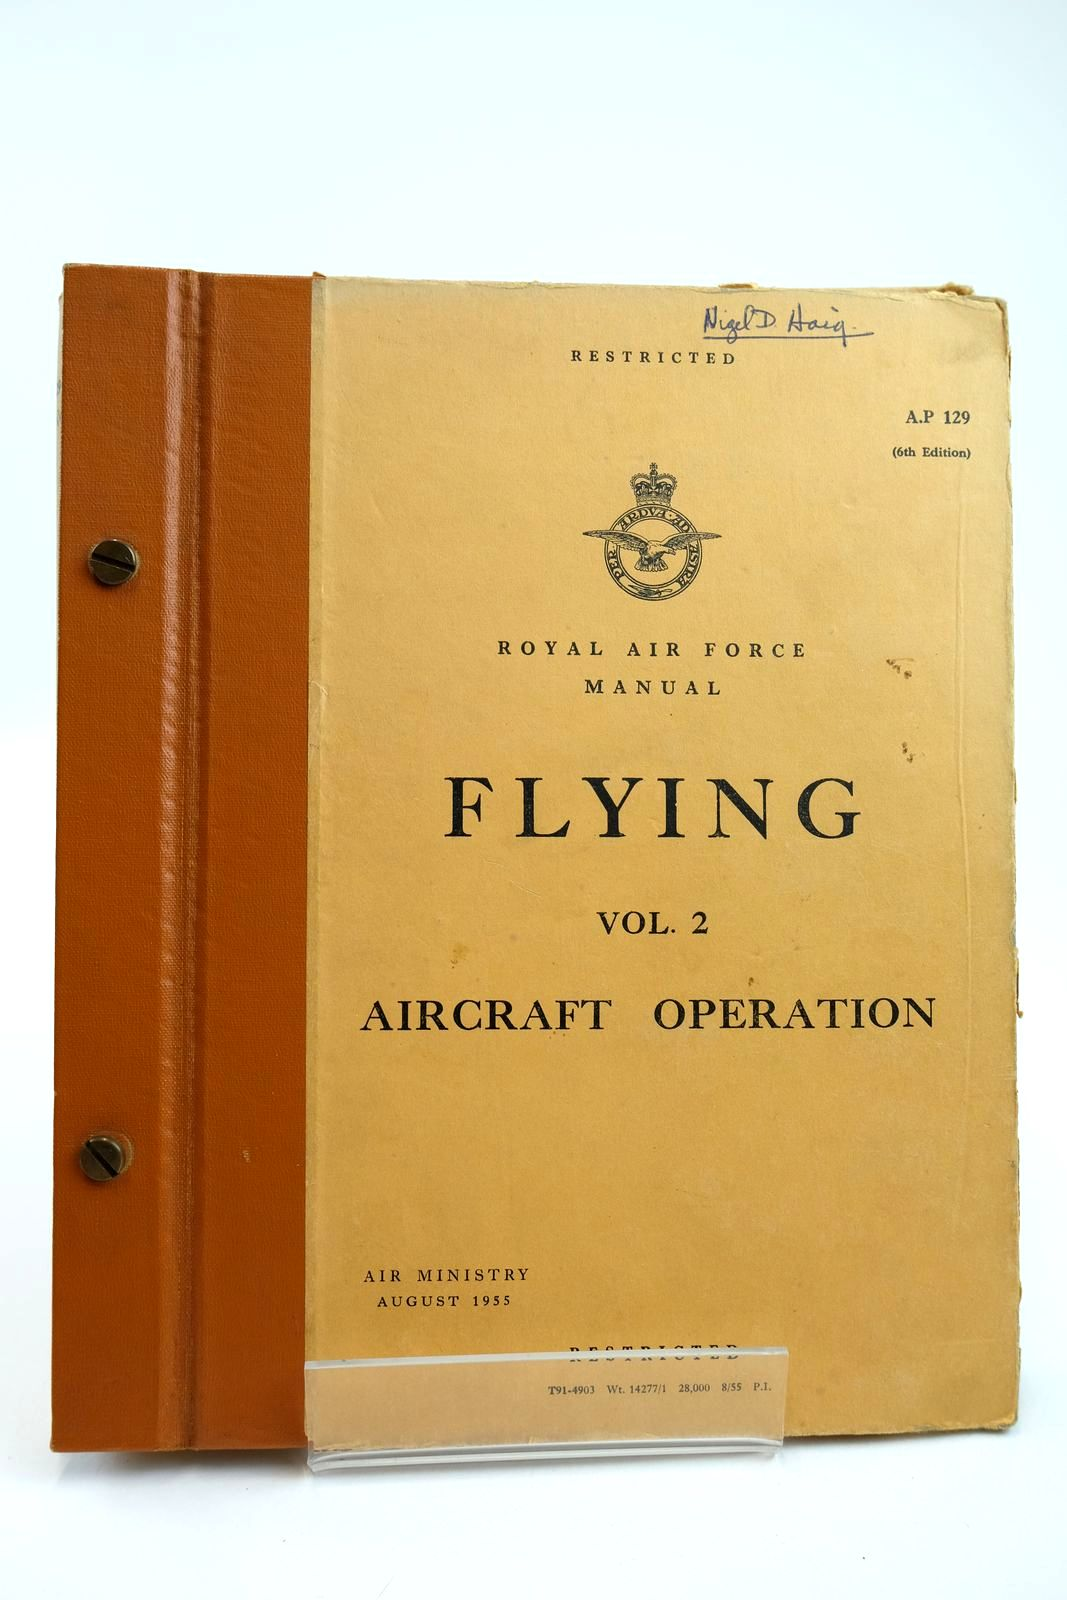 Photo of ROYAL AIR FORCE MANUAL FLYING VOL. 2 AIRCRAFT OPERATION published by Air Ministry (STOCK CODE: 2132185)  for sale by Stella & Rose's Books